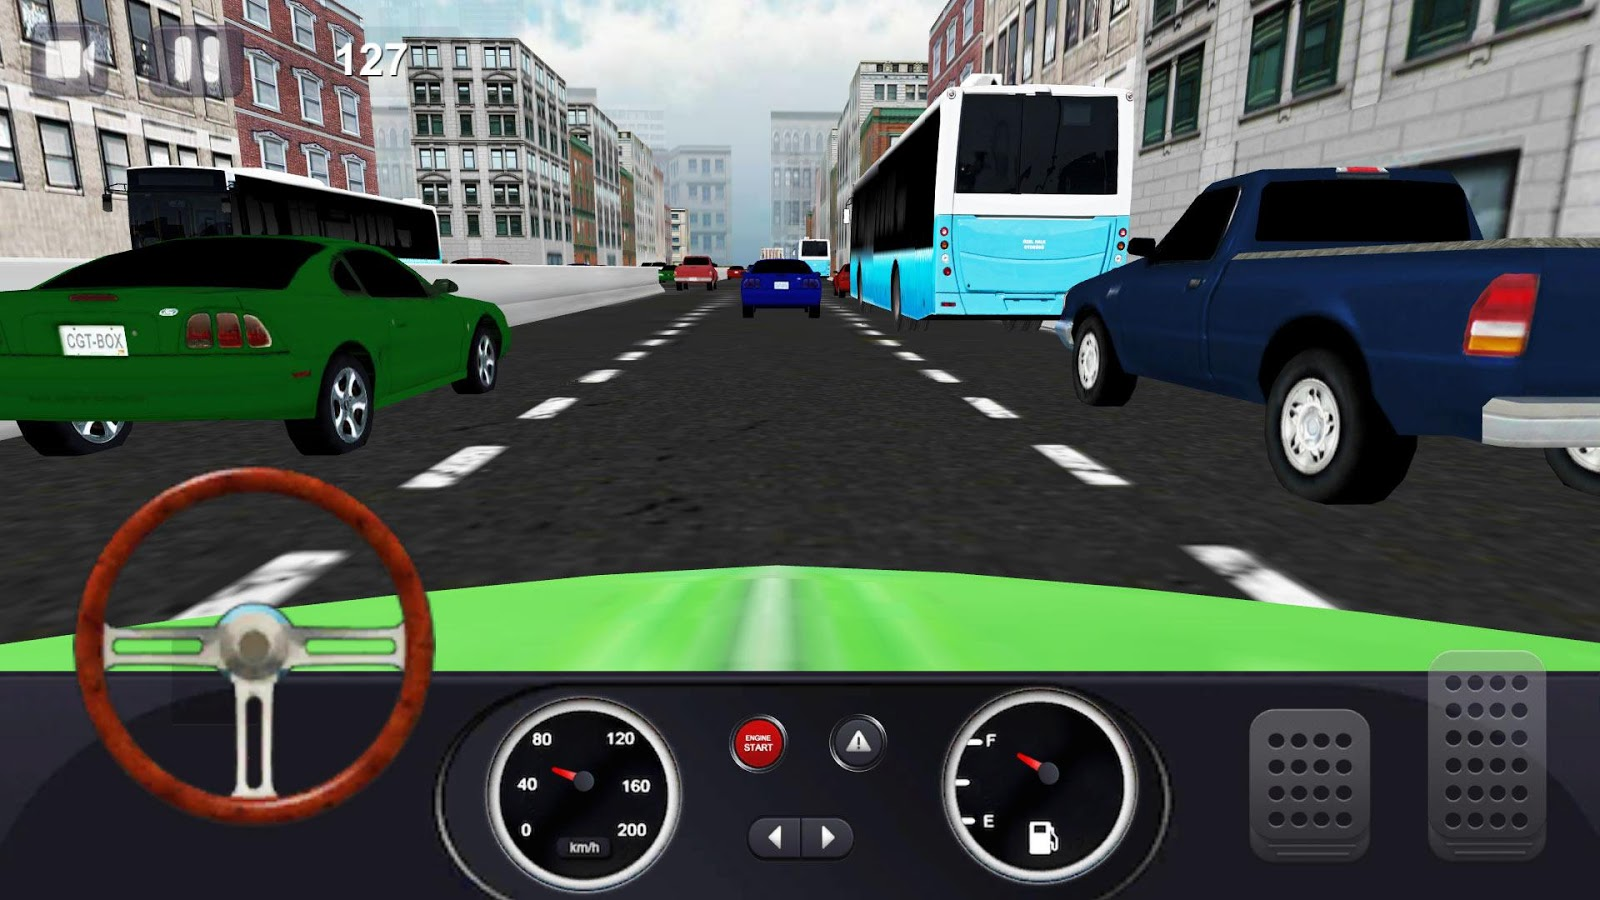 City Driving for Android - APK Download - APKPure.com